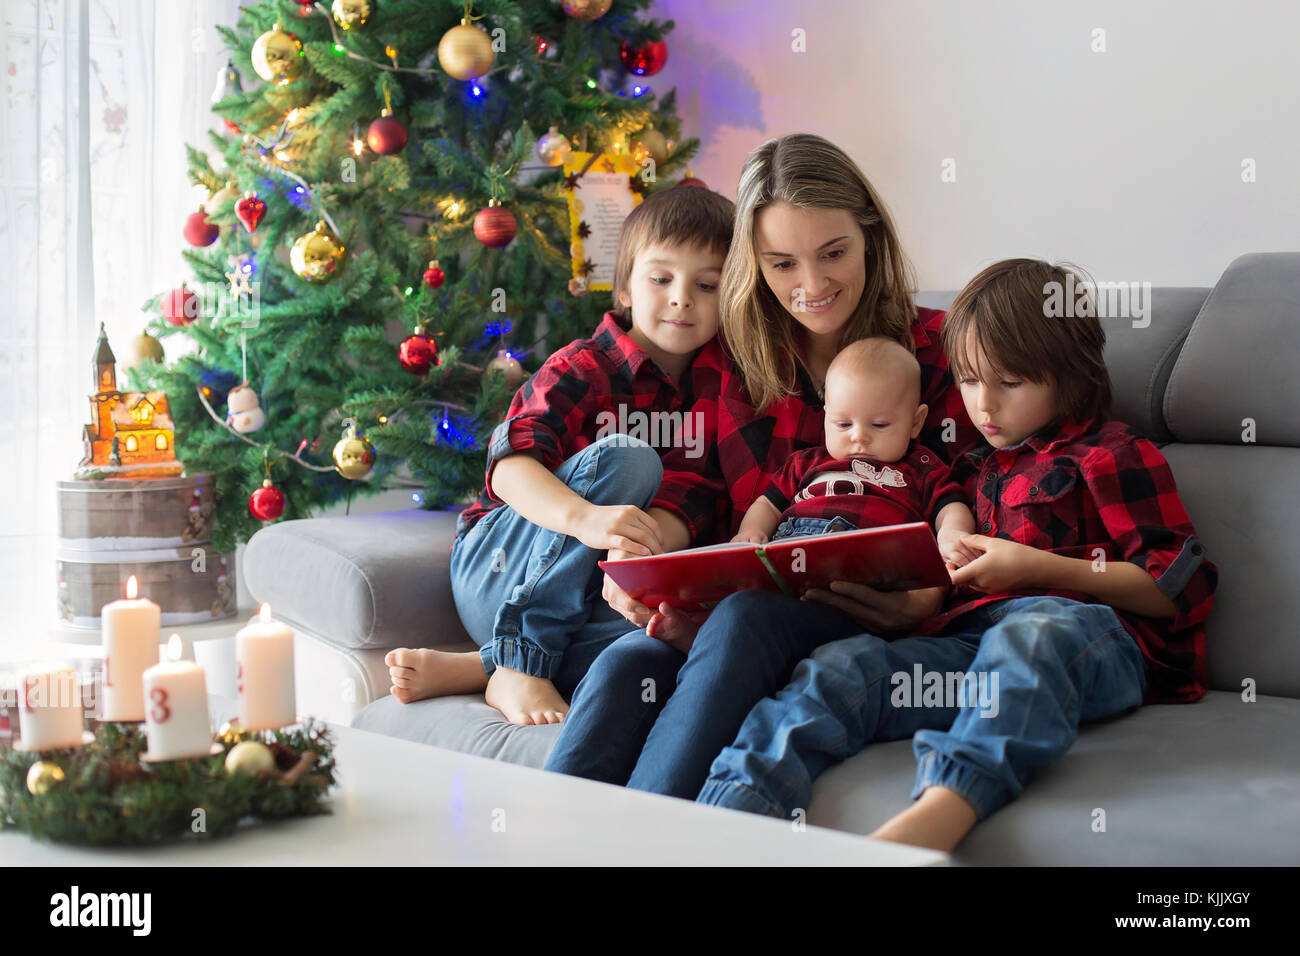 Happy family portrait on Christmas, mother, reading a book to her three children sitting on couch at home, chritmas - Stock Image